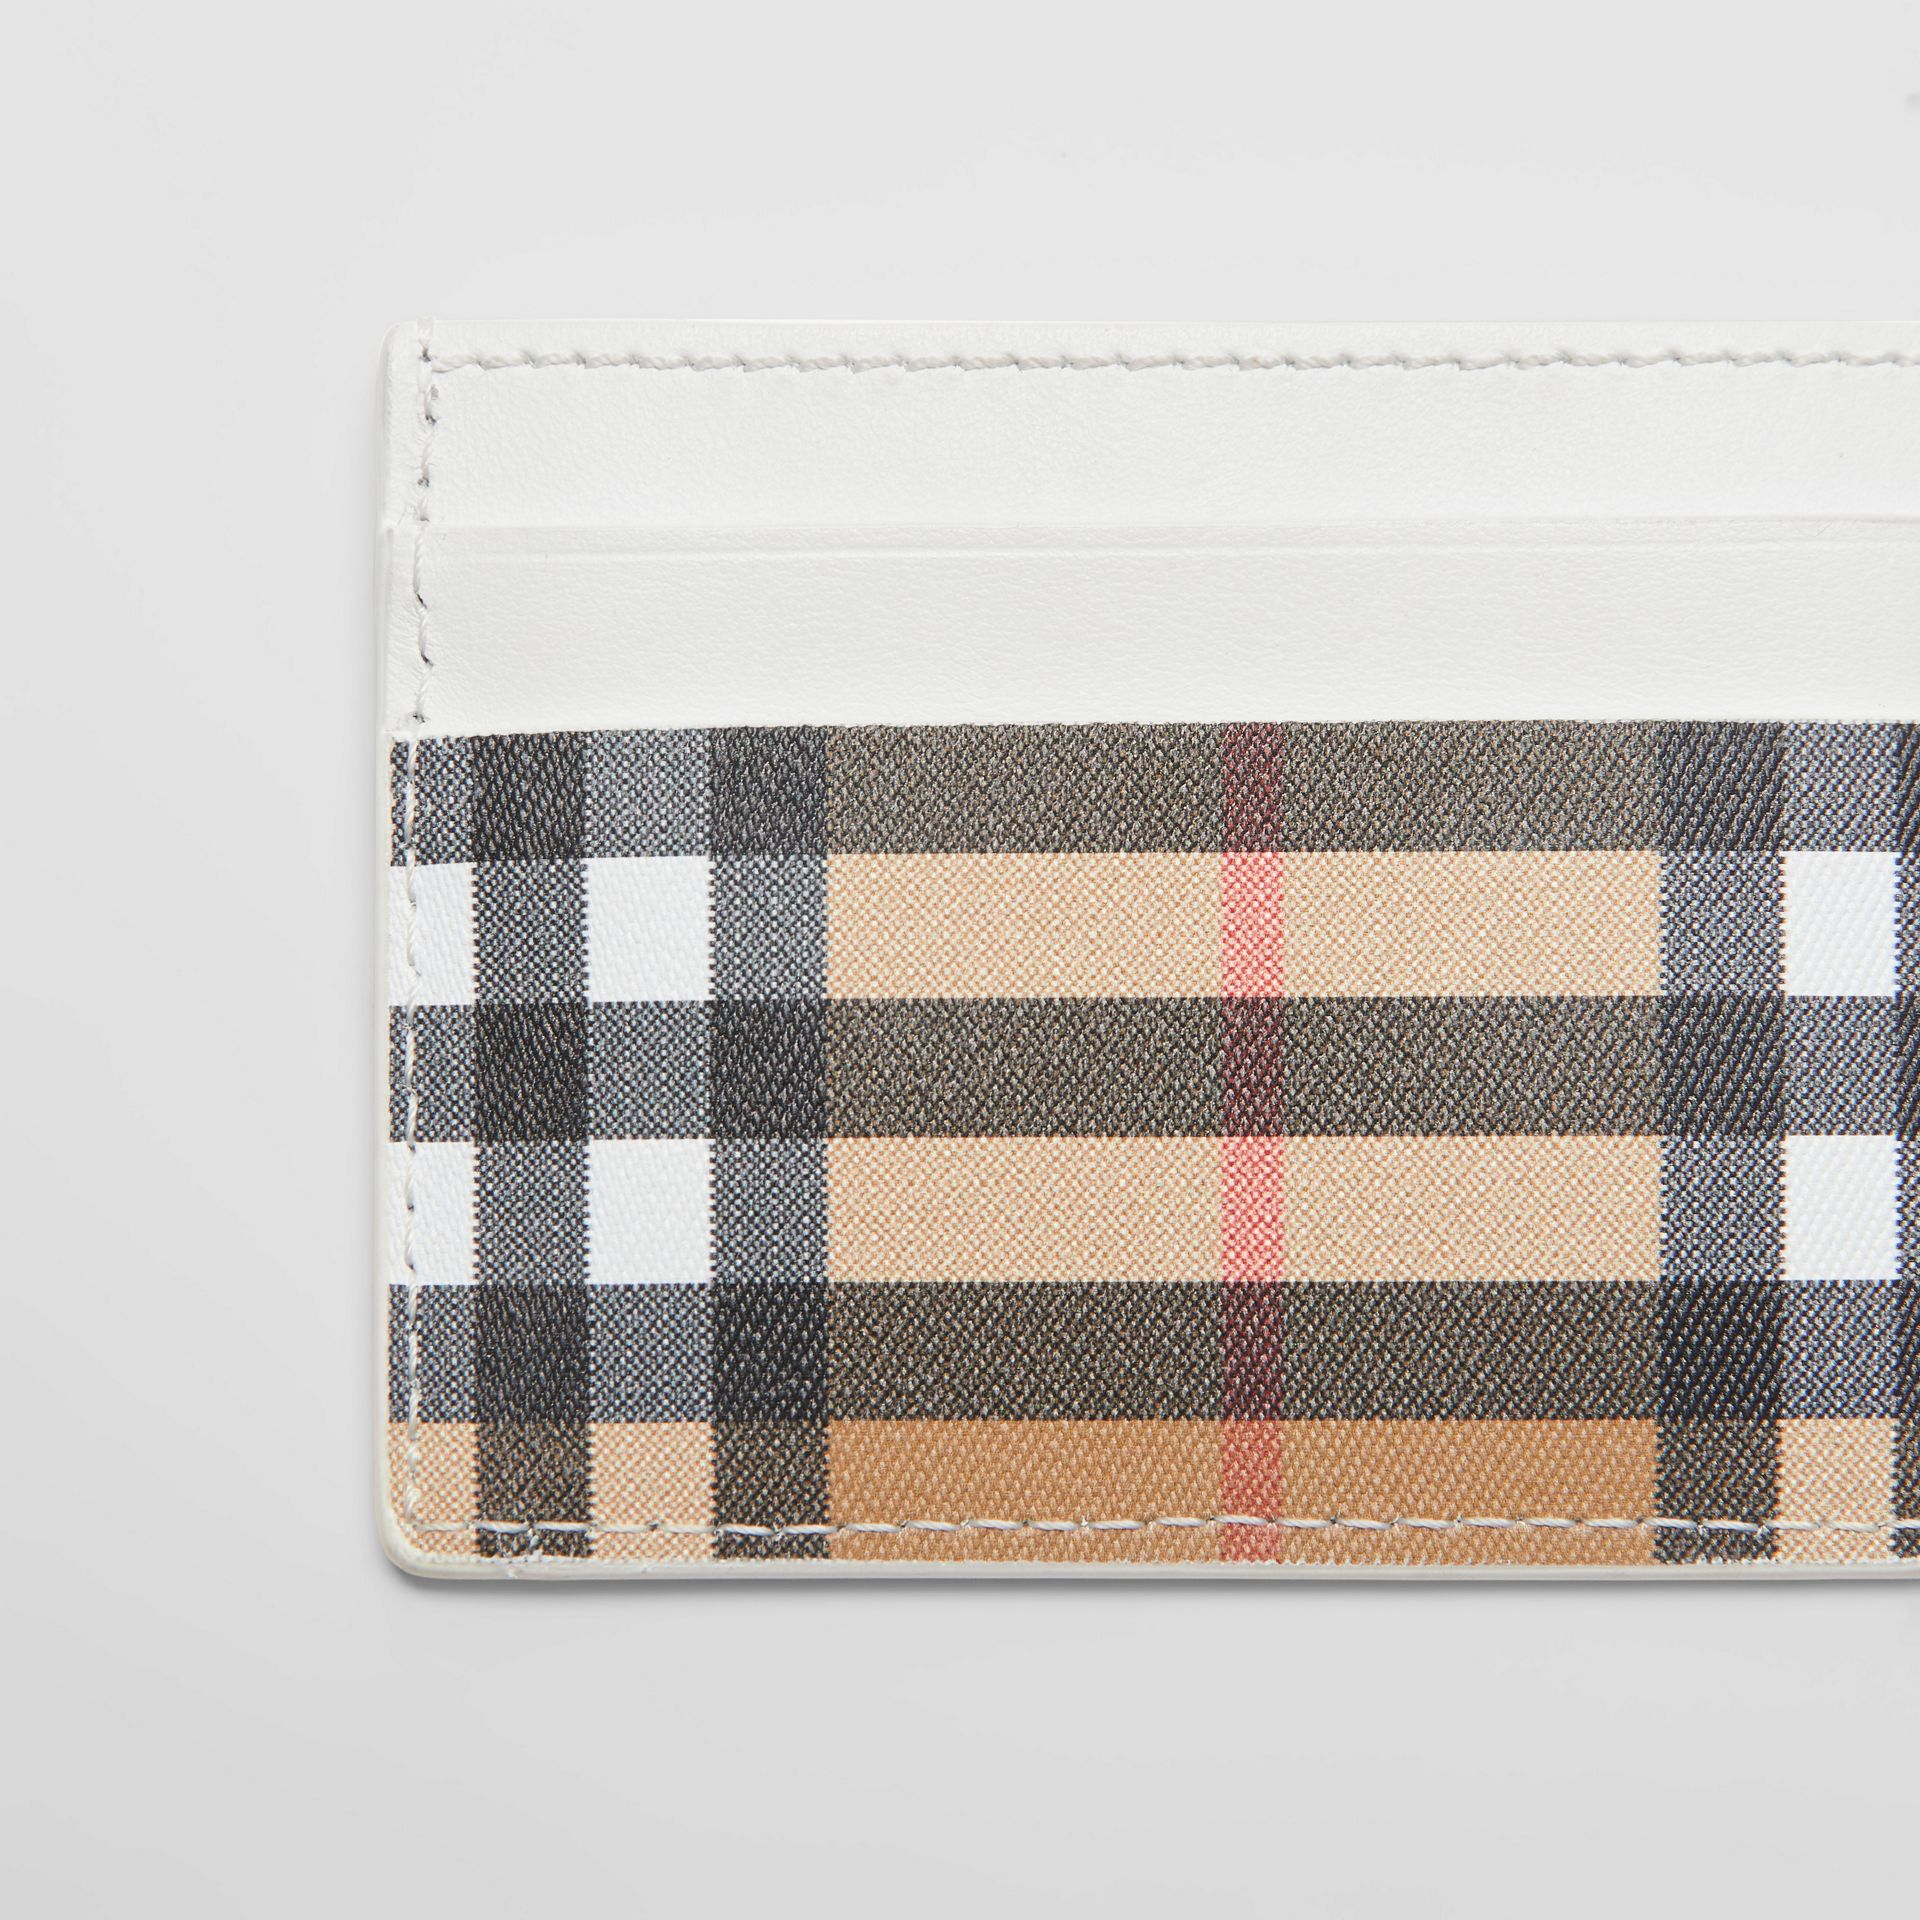 Vintage Check and Leather Card Case in Chalk White | Burberry Australia - gallery image 1